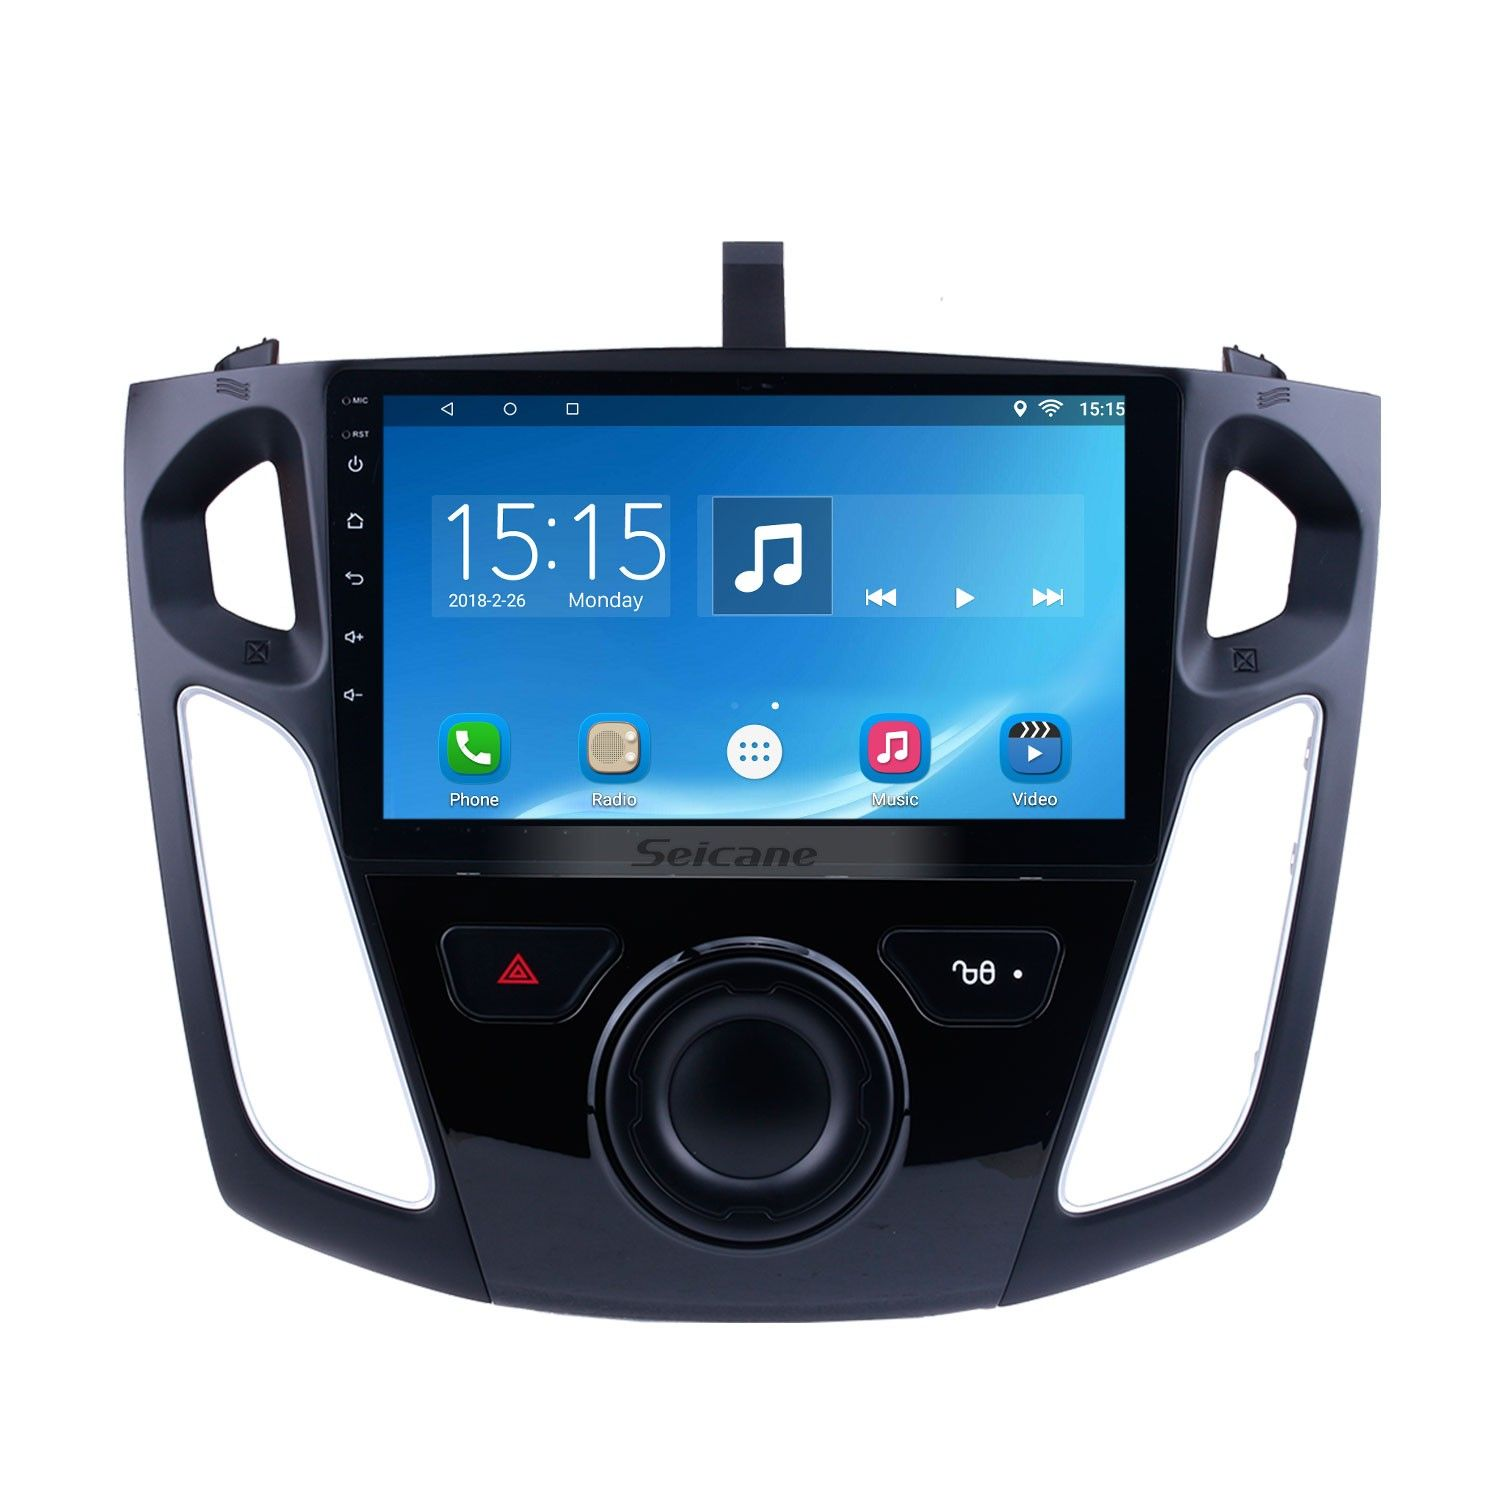 9 Inch Android 10 0 Gps Navigation Hd 1024 600 Touchscreen Radio For 2011 2012 2015 Ford Focus With Bluetooth Wifi 1080p Usb Mirror Link Obd2 Dvr Steering Wheel Gps Navigation Gps Ford Focus